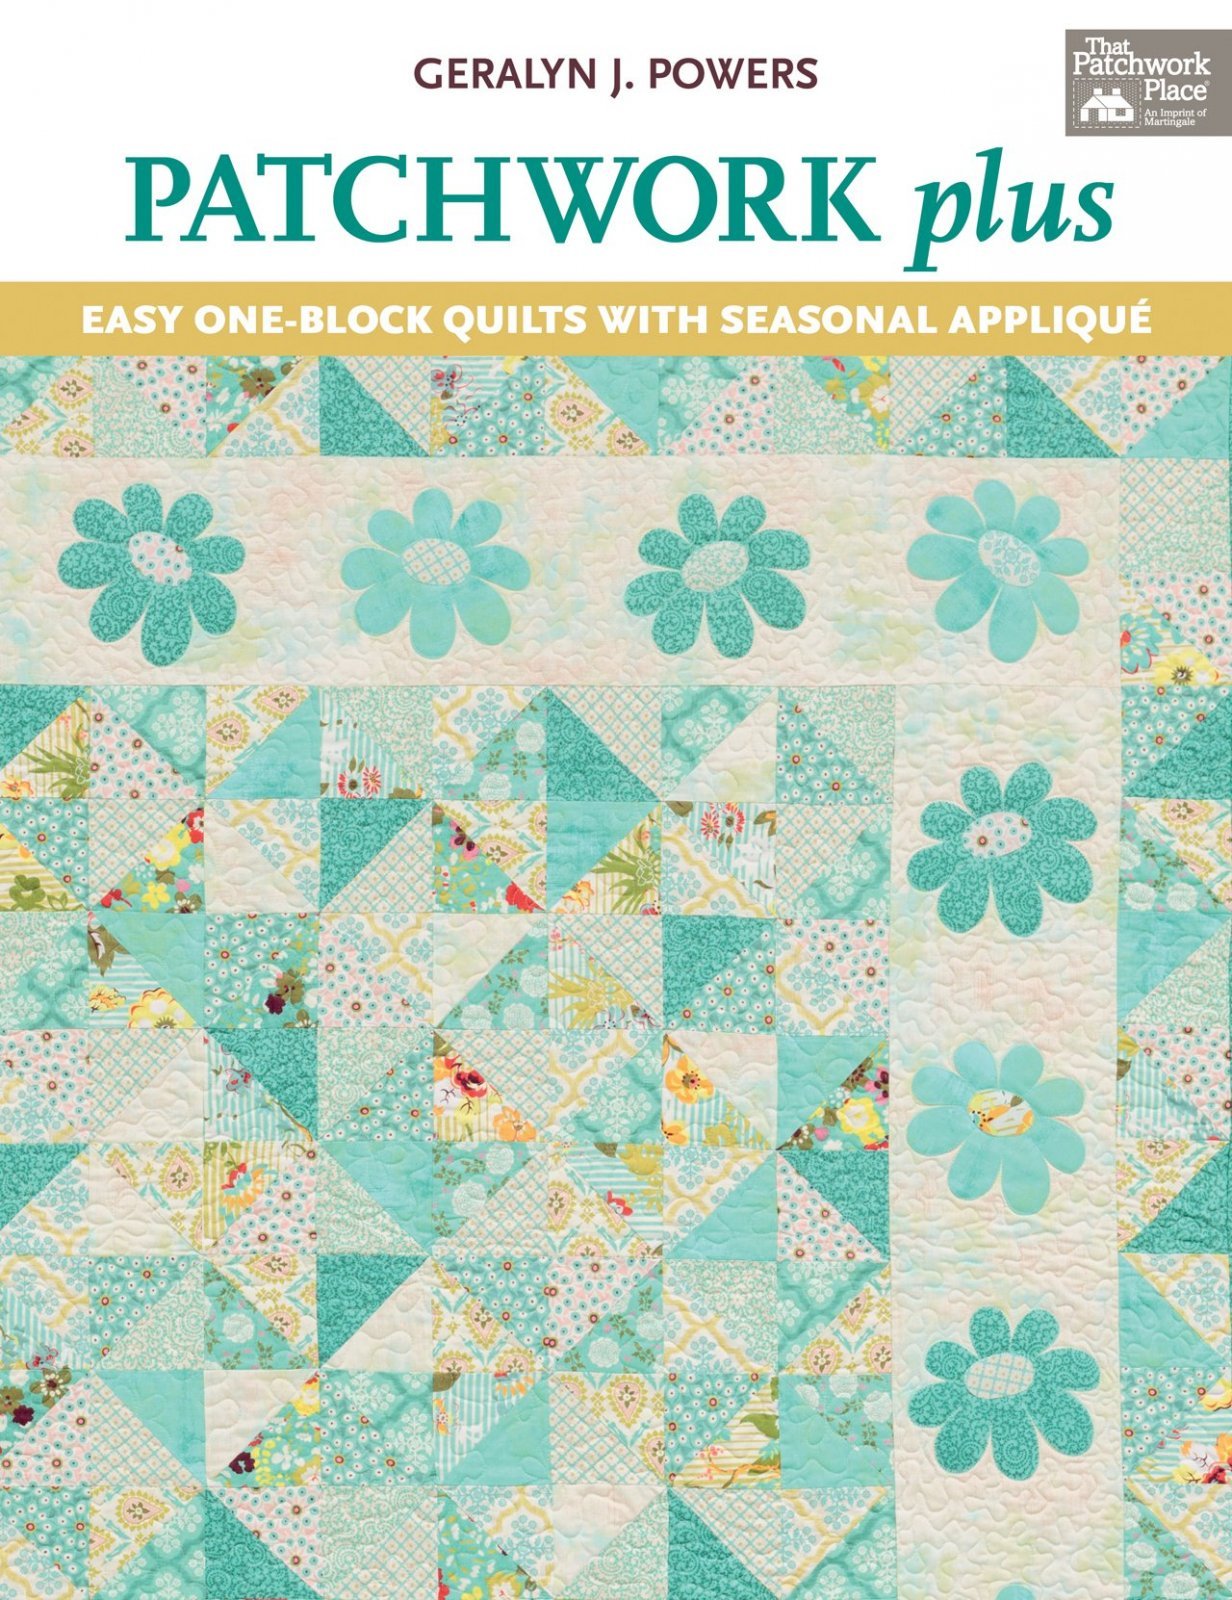 Patchwork Plus - Easy One-Block Quilts with Seasonal Applique